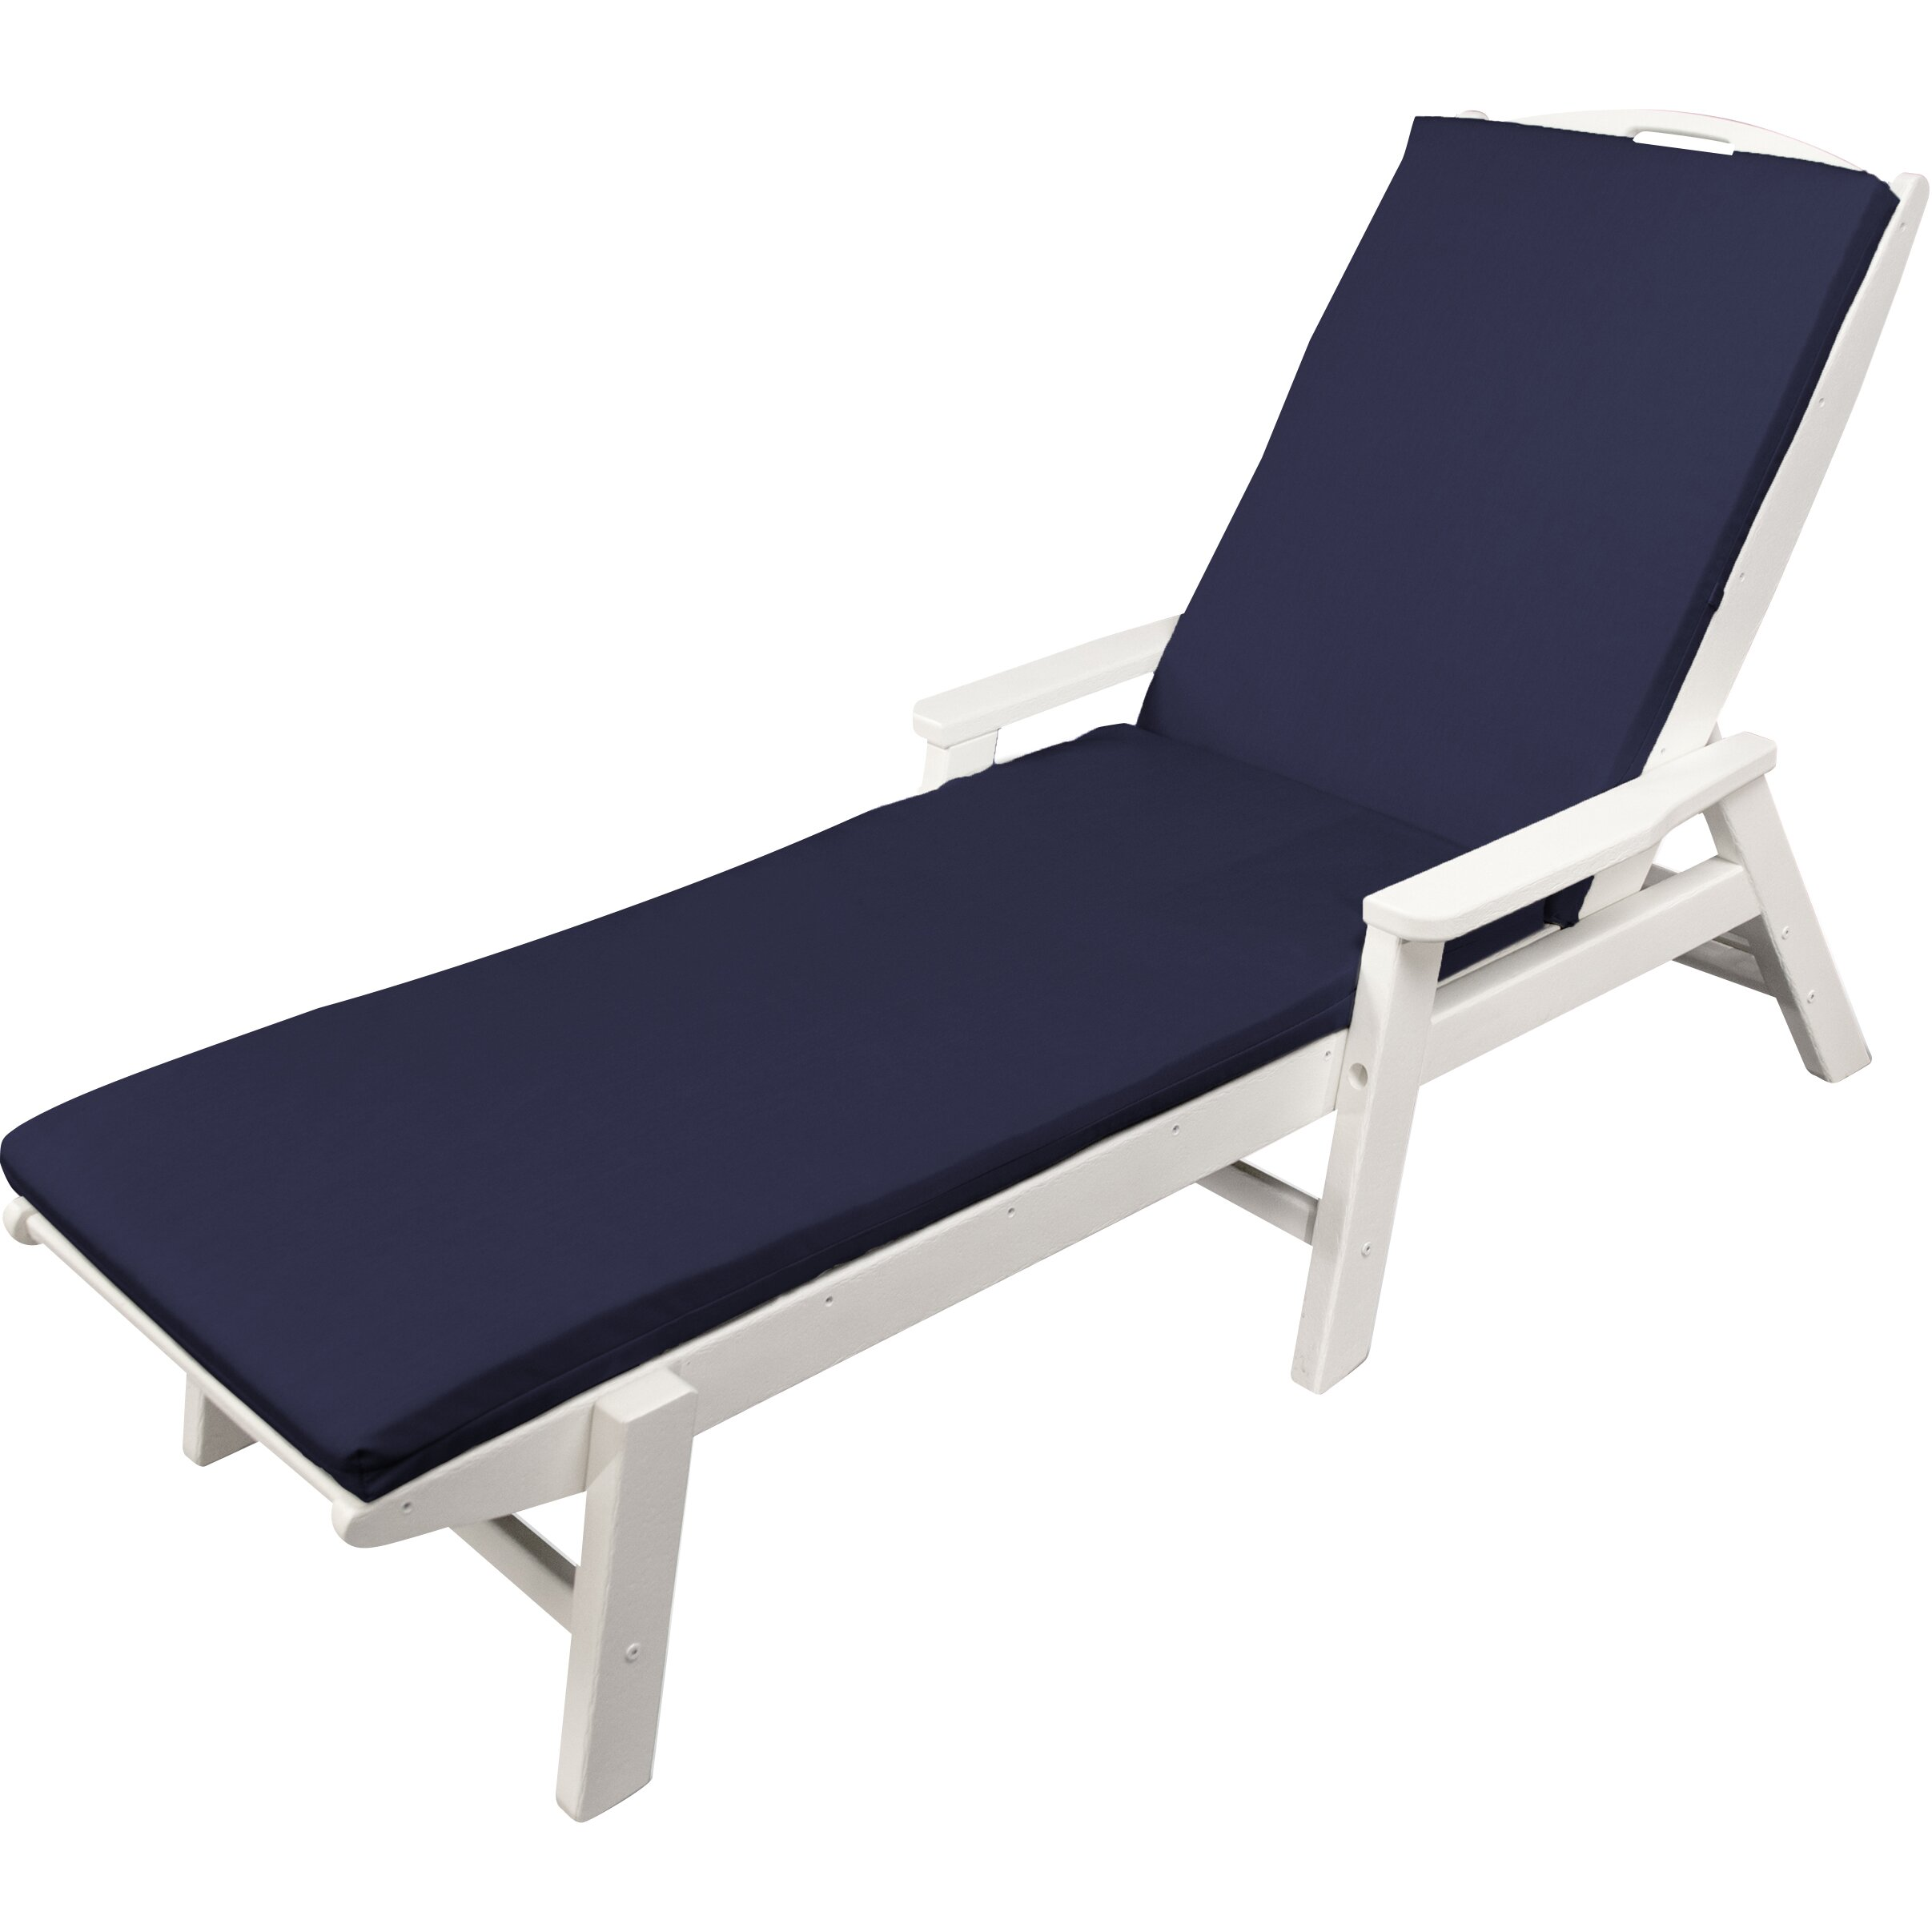 Ateeva outdoor sunbrella chaise lounge cushion reviews for Chaise longue cushion